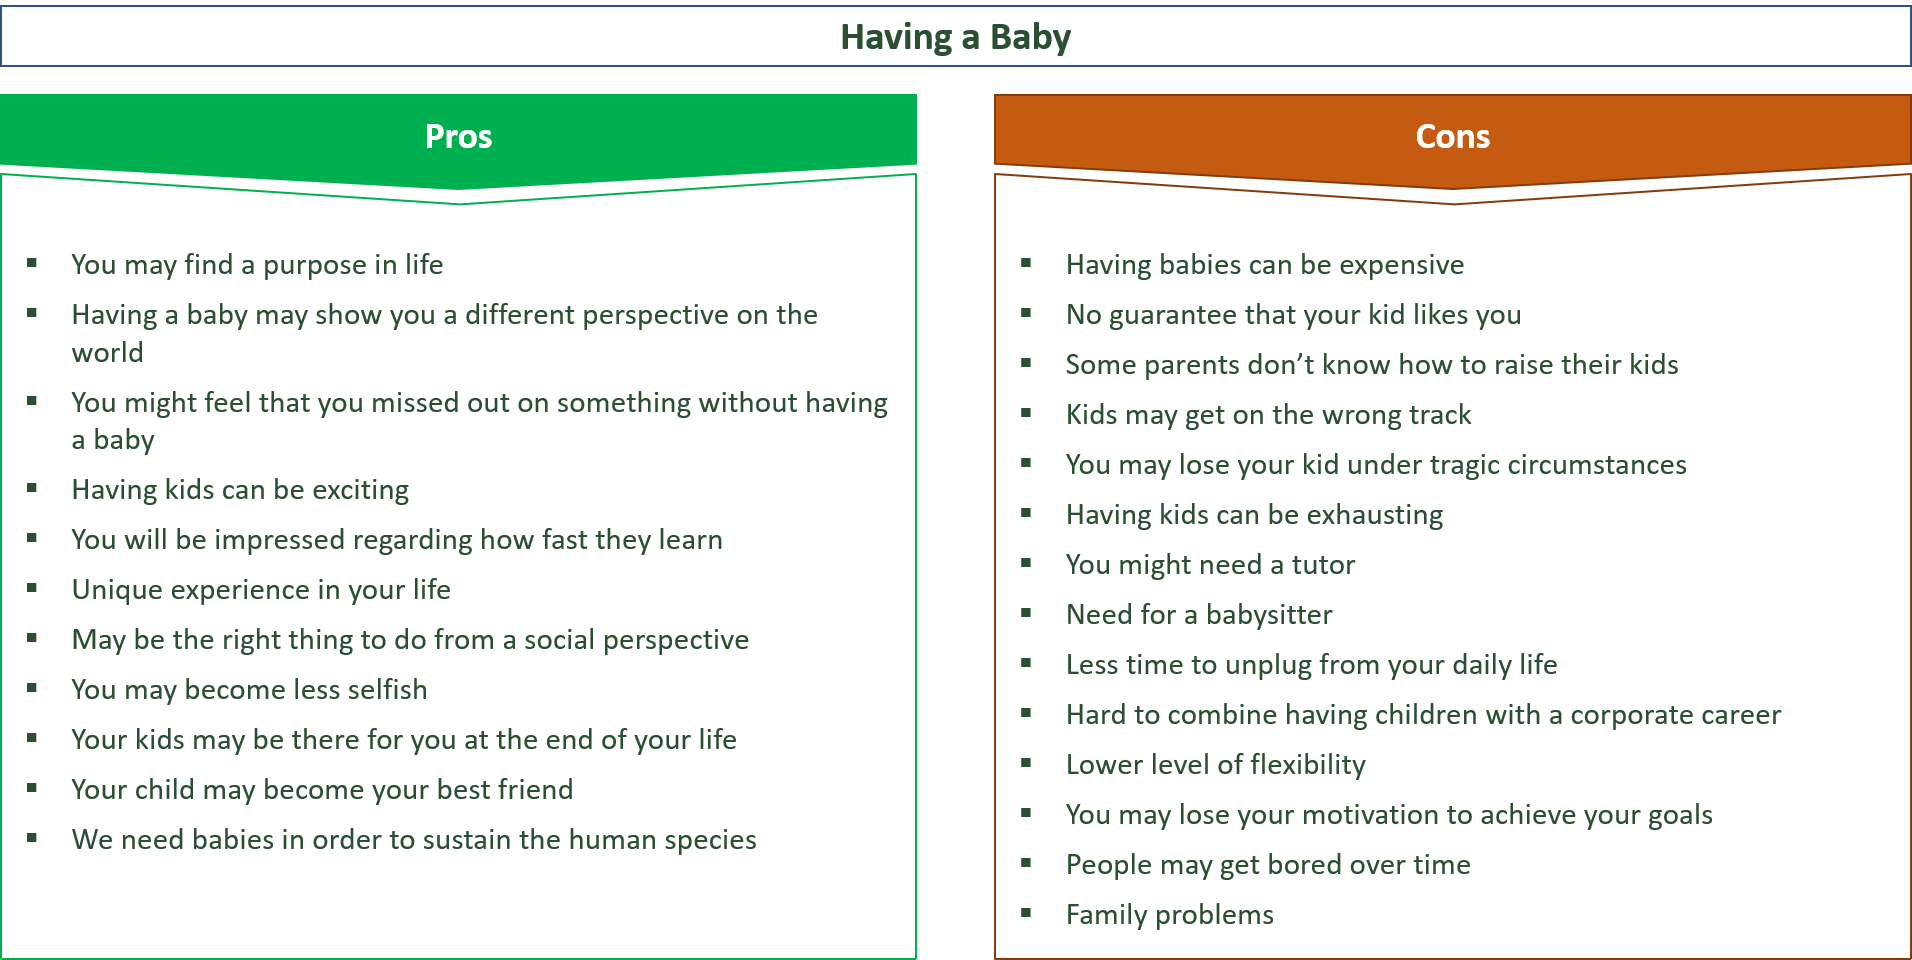 advantages and disadvantages of having a baby